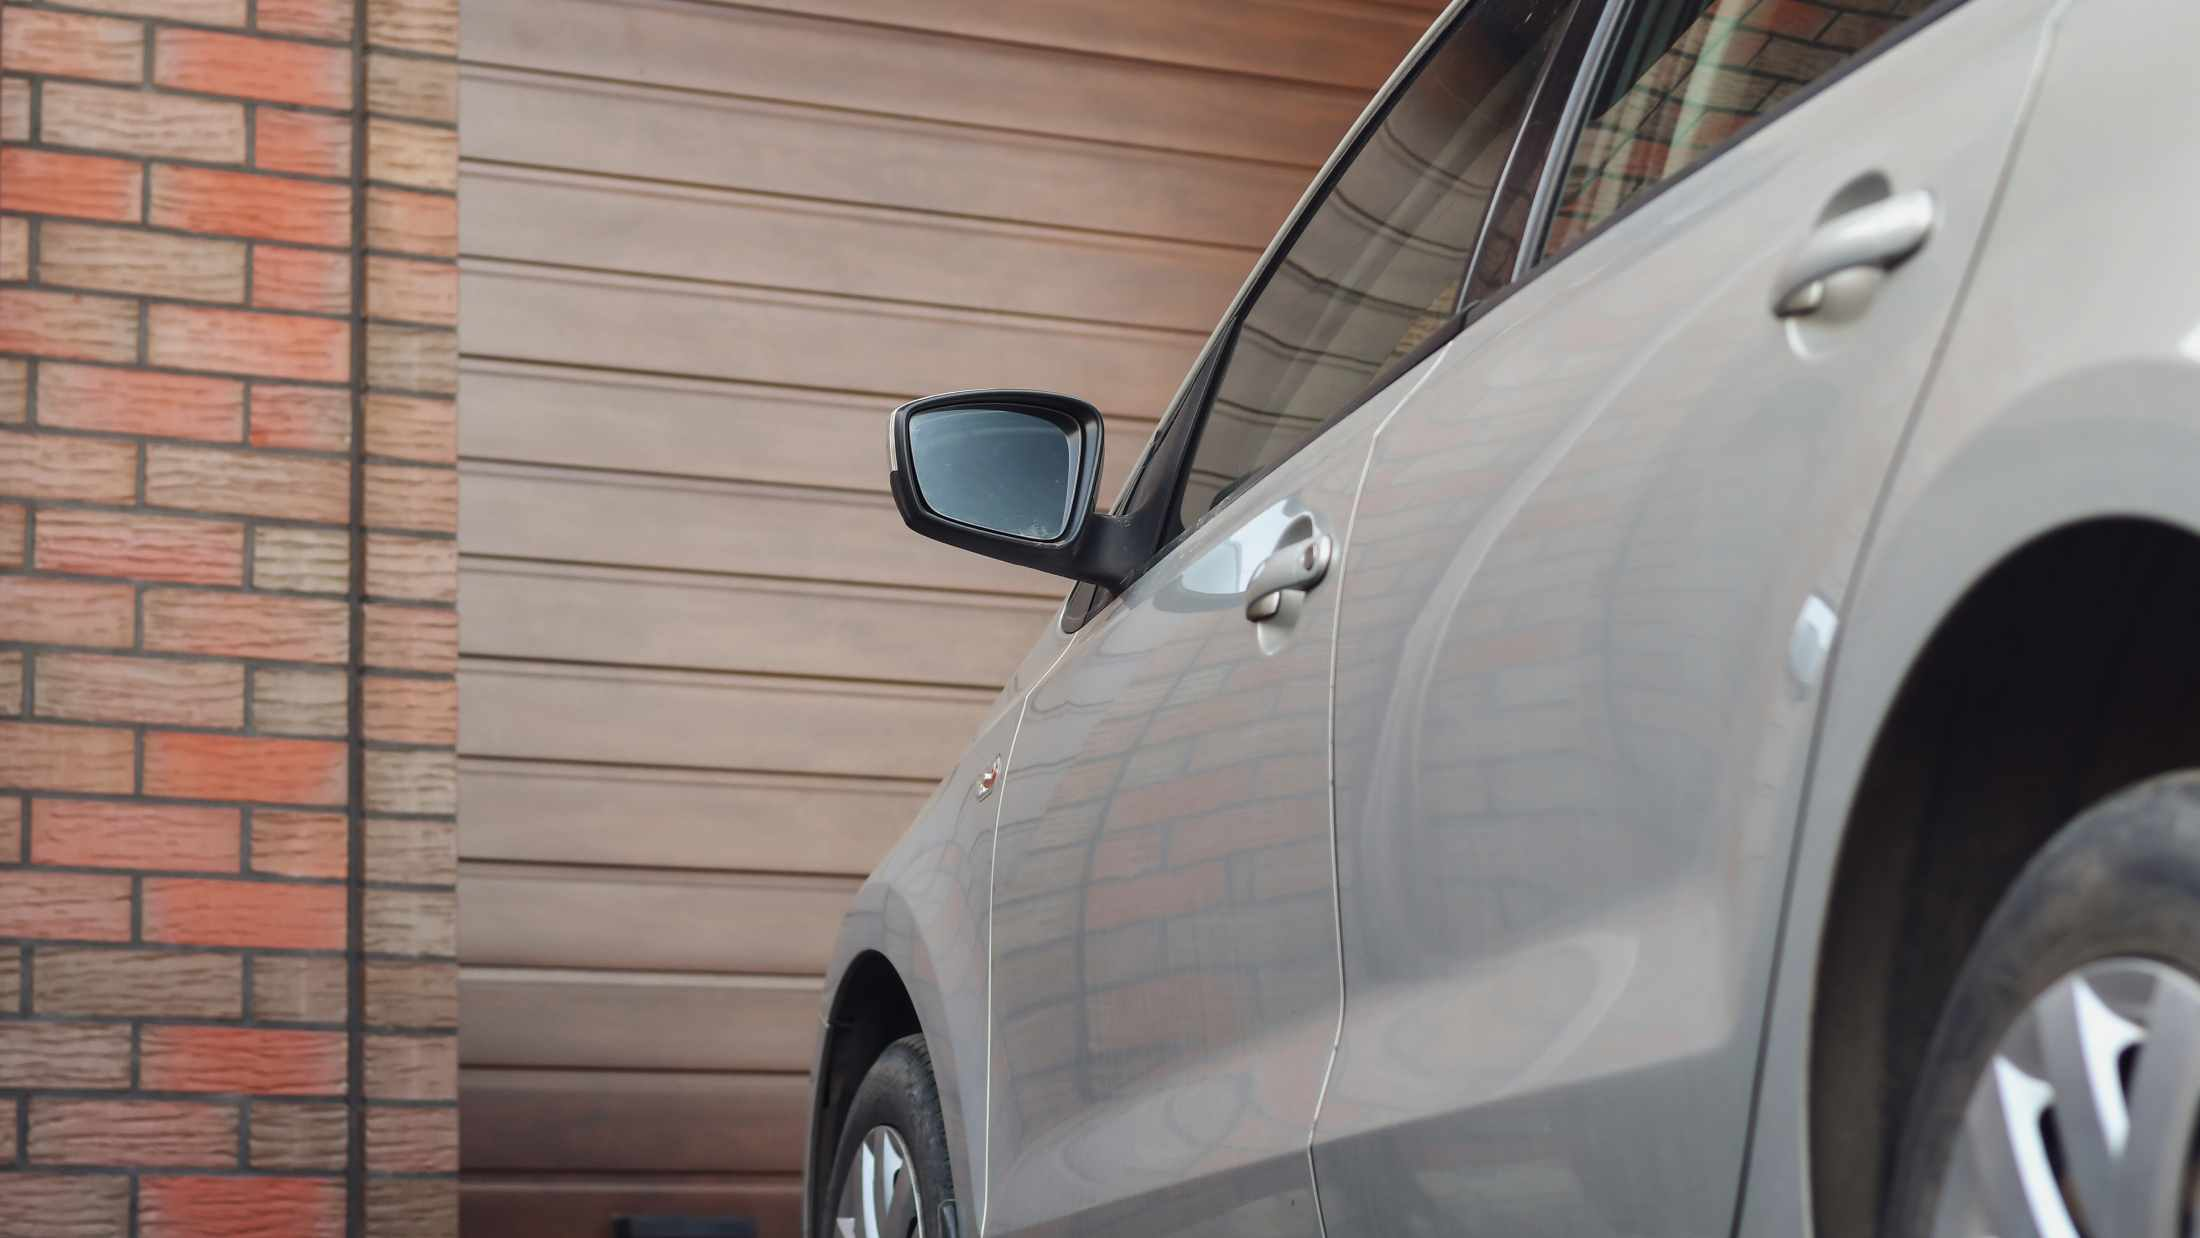 Silver car parked on driveway in front of garage with a brown door